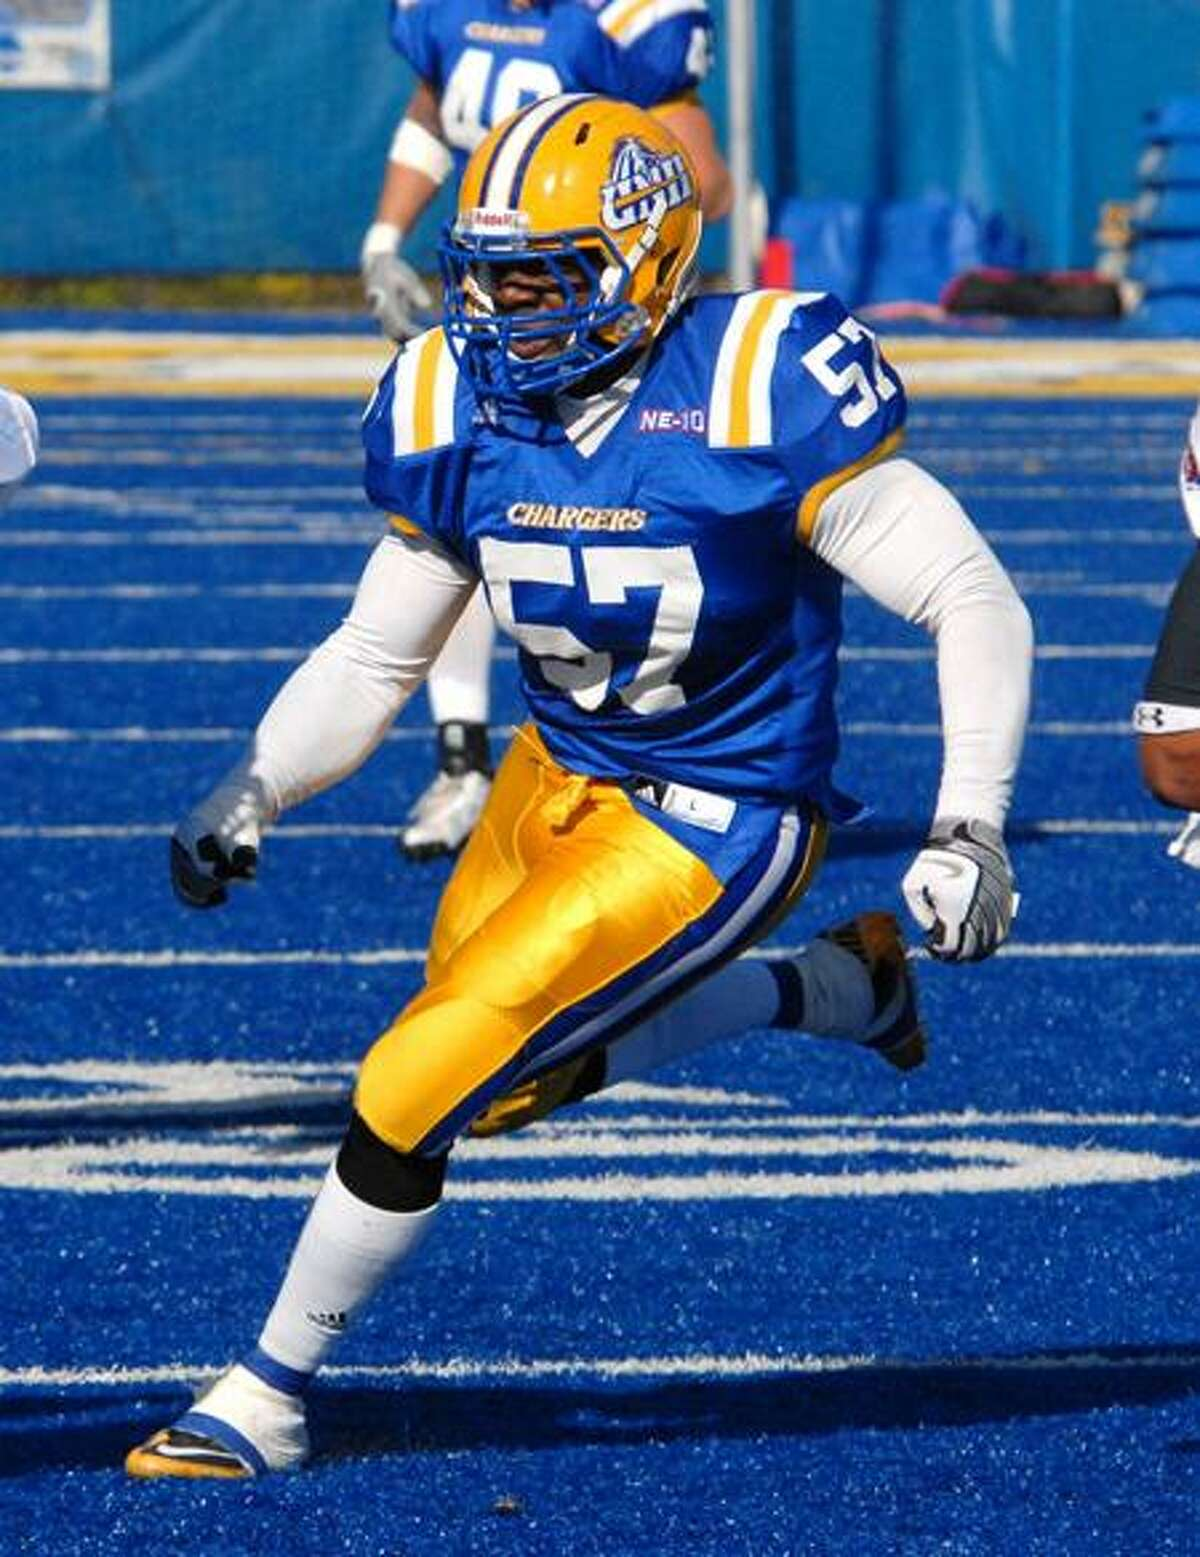 Charlie Hatchett, a 5-foot-11, 240-pounder out of Stratford High, is the top linebacker on a team that has set its sights on reaching the NCAA playoffs this year. (Photo courtesy of University of New Haven)